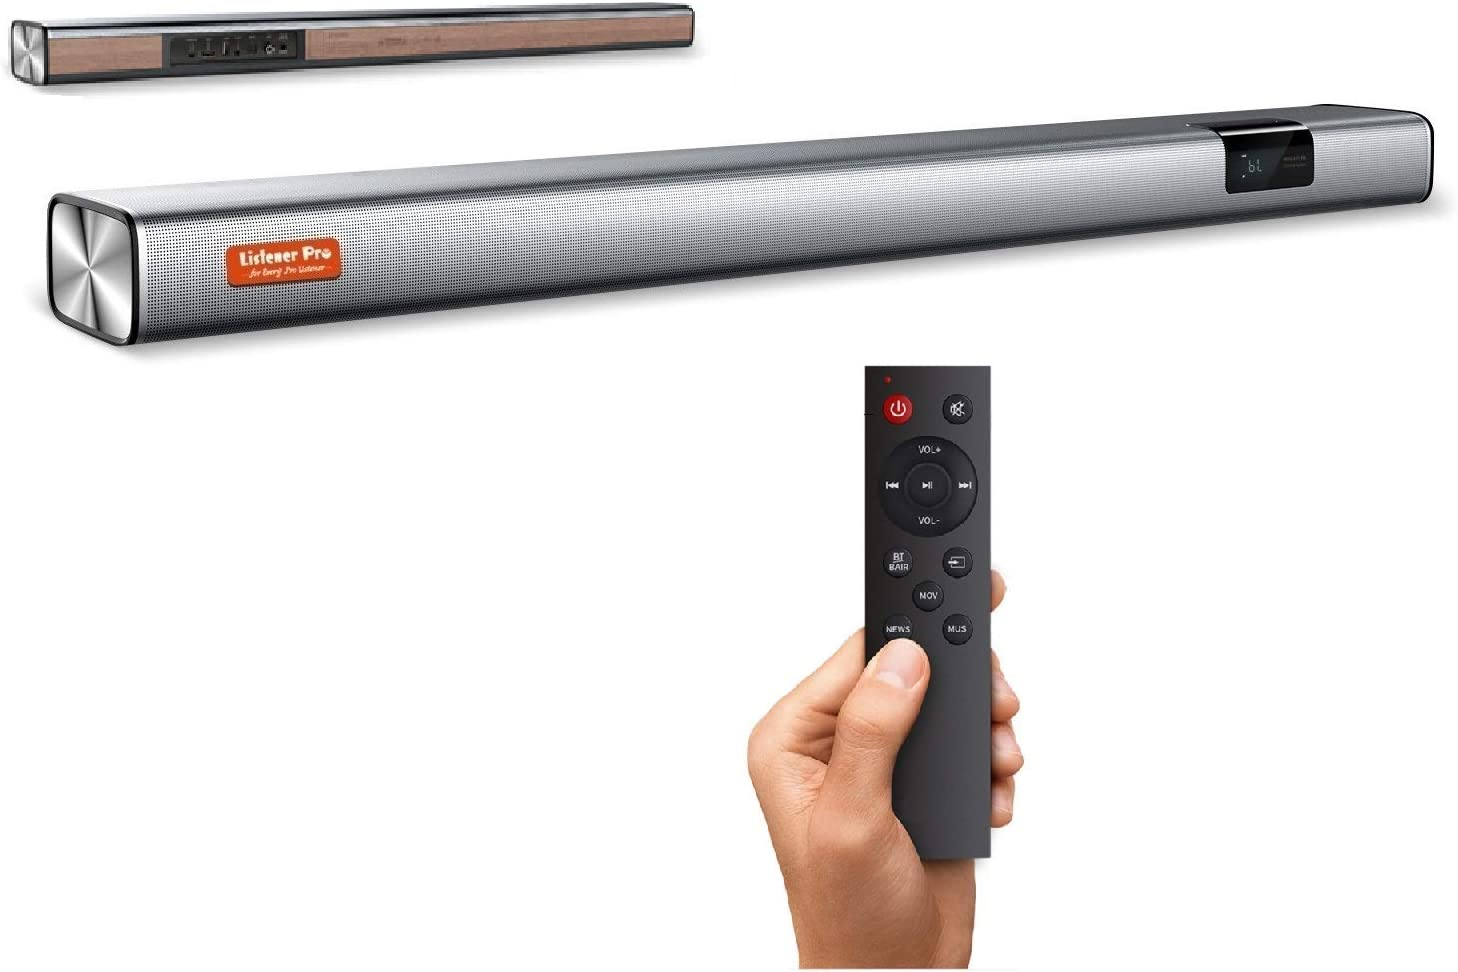 Listener Pro Slim Sound Bars for TV & Projector, Wireless Soundbar HDMI ARC/Opt/AUX/COX/USB Inputs, Bluetooth TV Speaker for Home Theater Sound Bar System, CE/FCC/ROHS Certified (35inch)